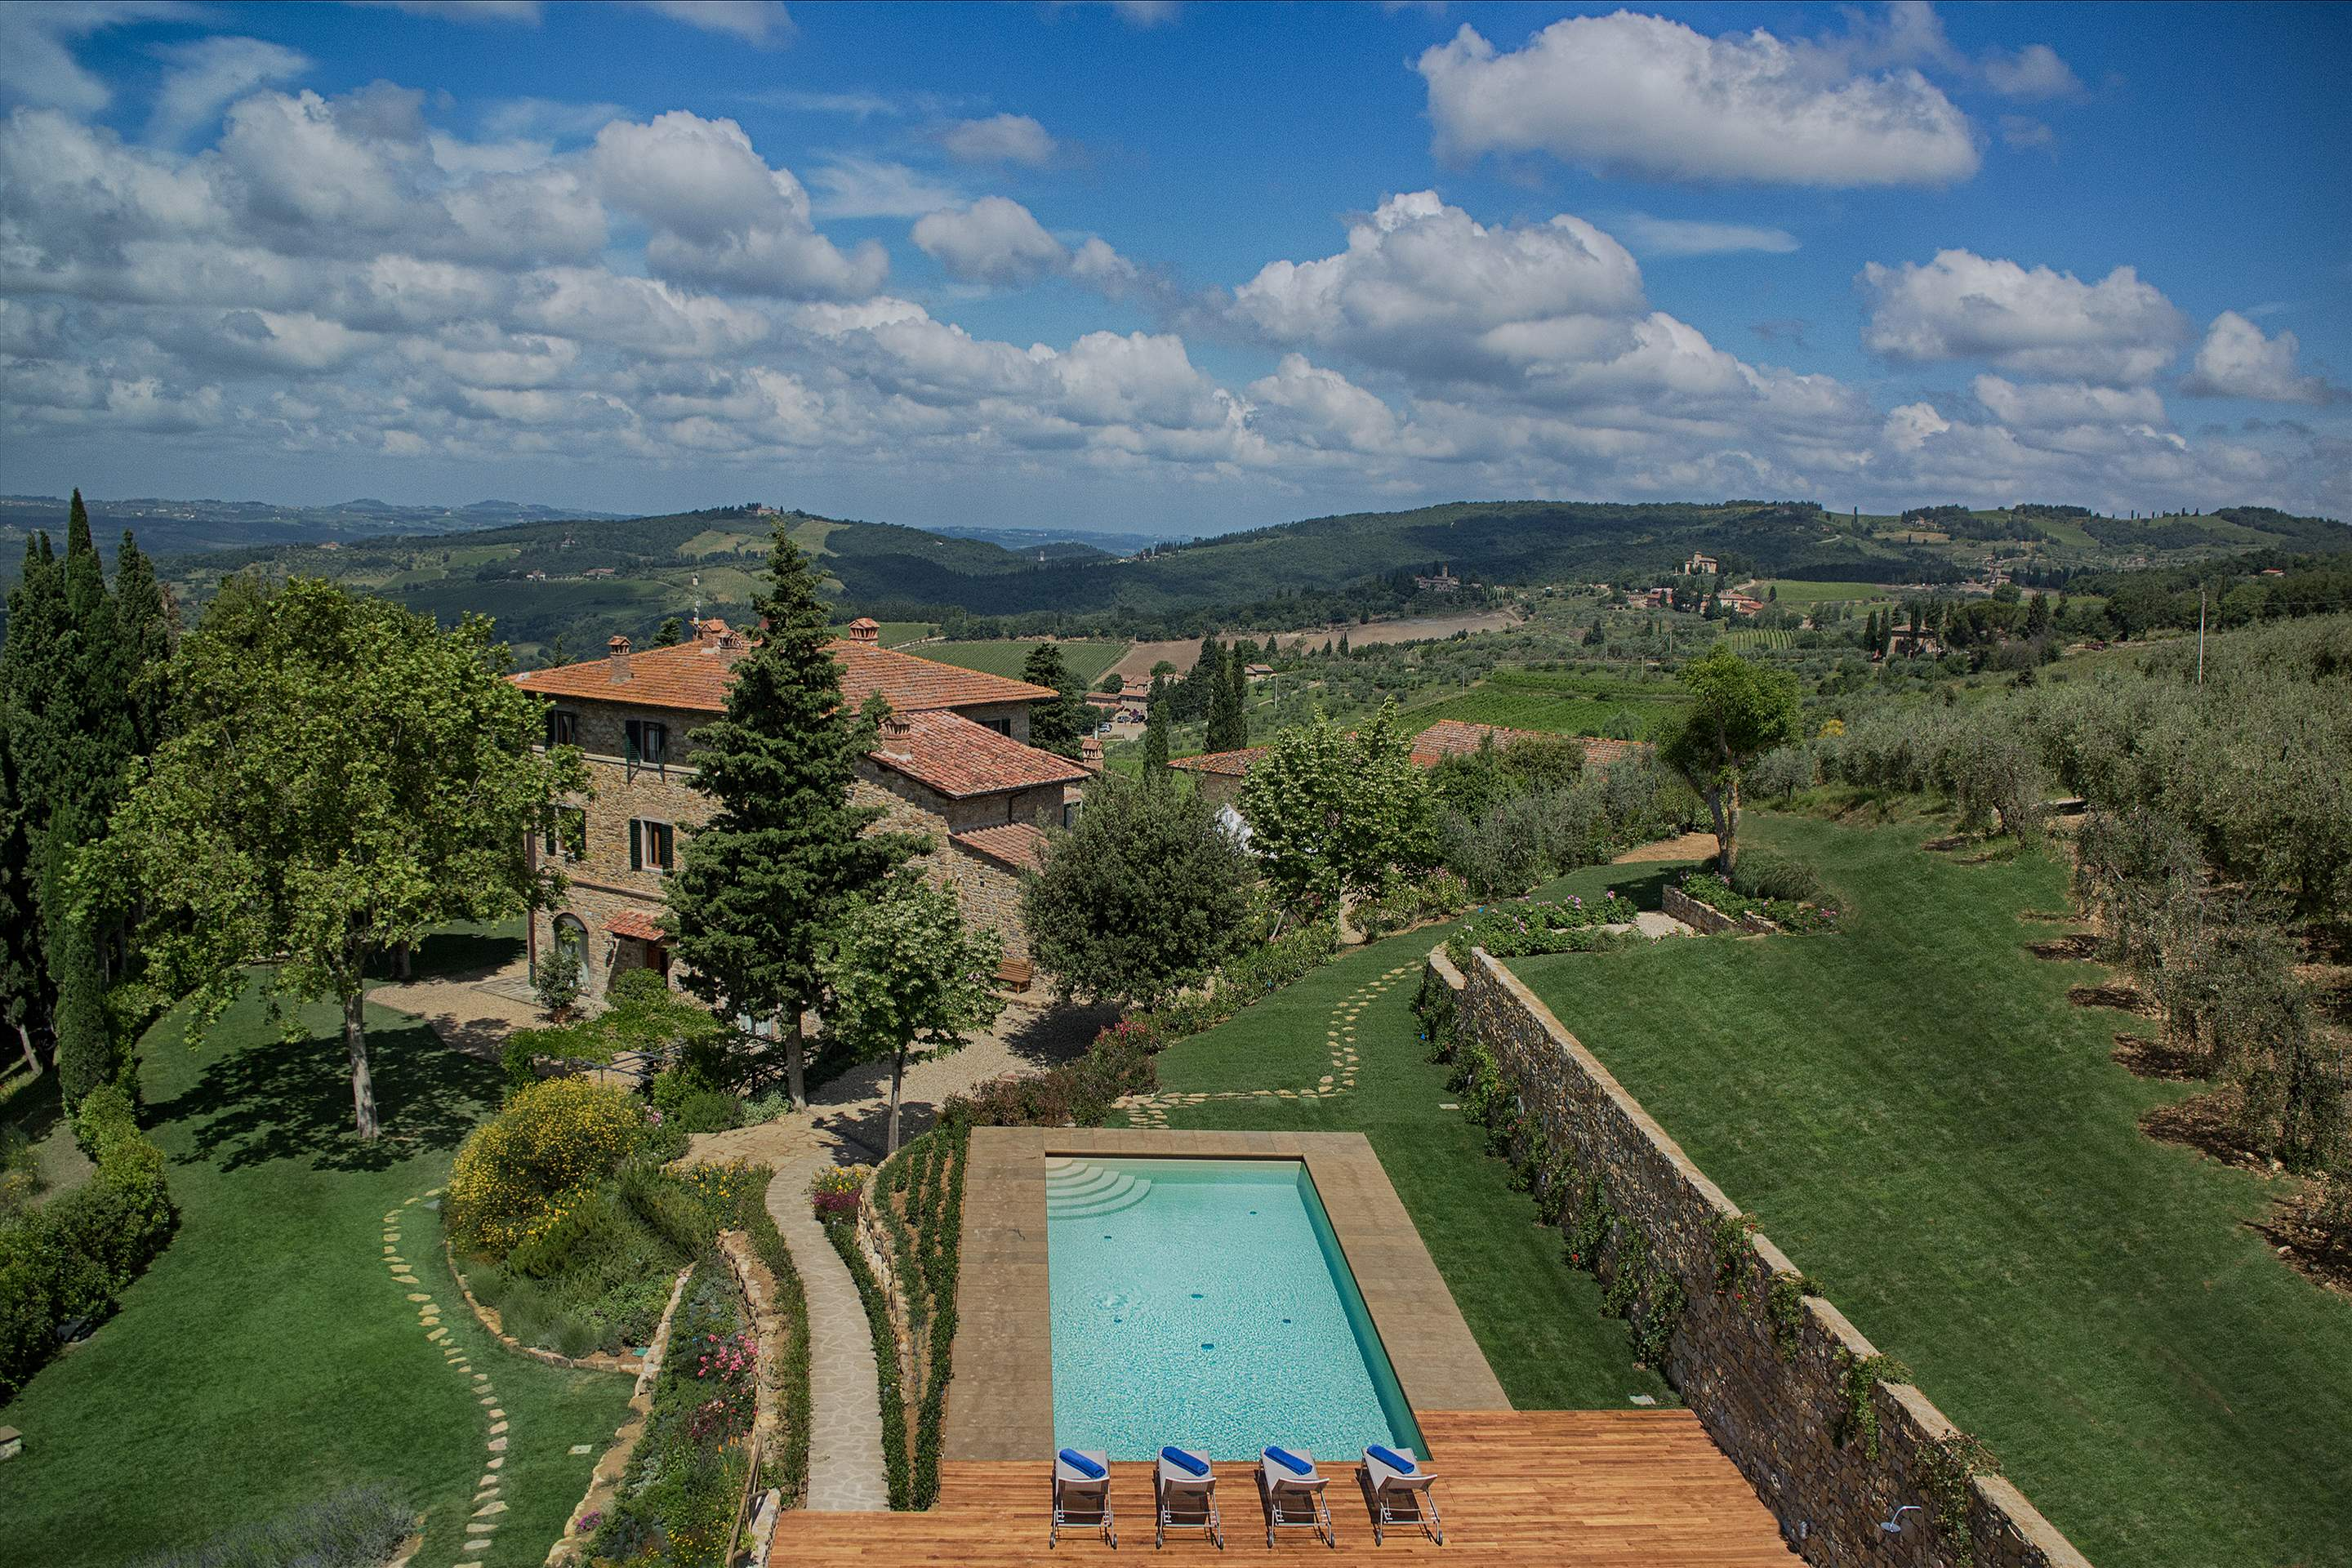 Villa La Valetta, 1 Bed Apt Rosa, 1 bedroom villa in Chianti & Countryside, Tuscany Photo #12